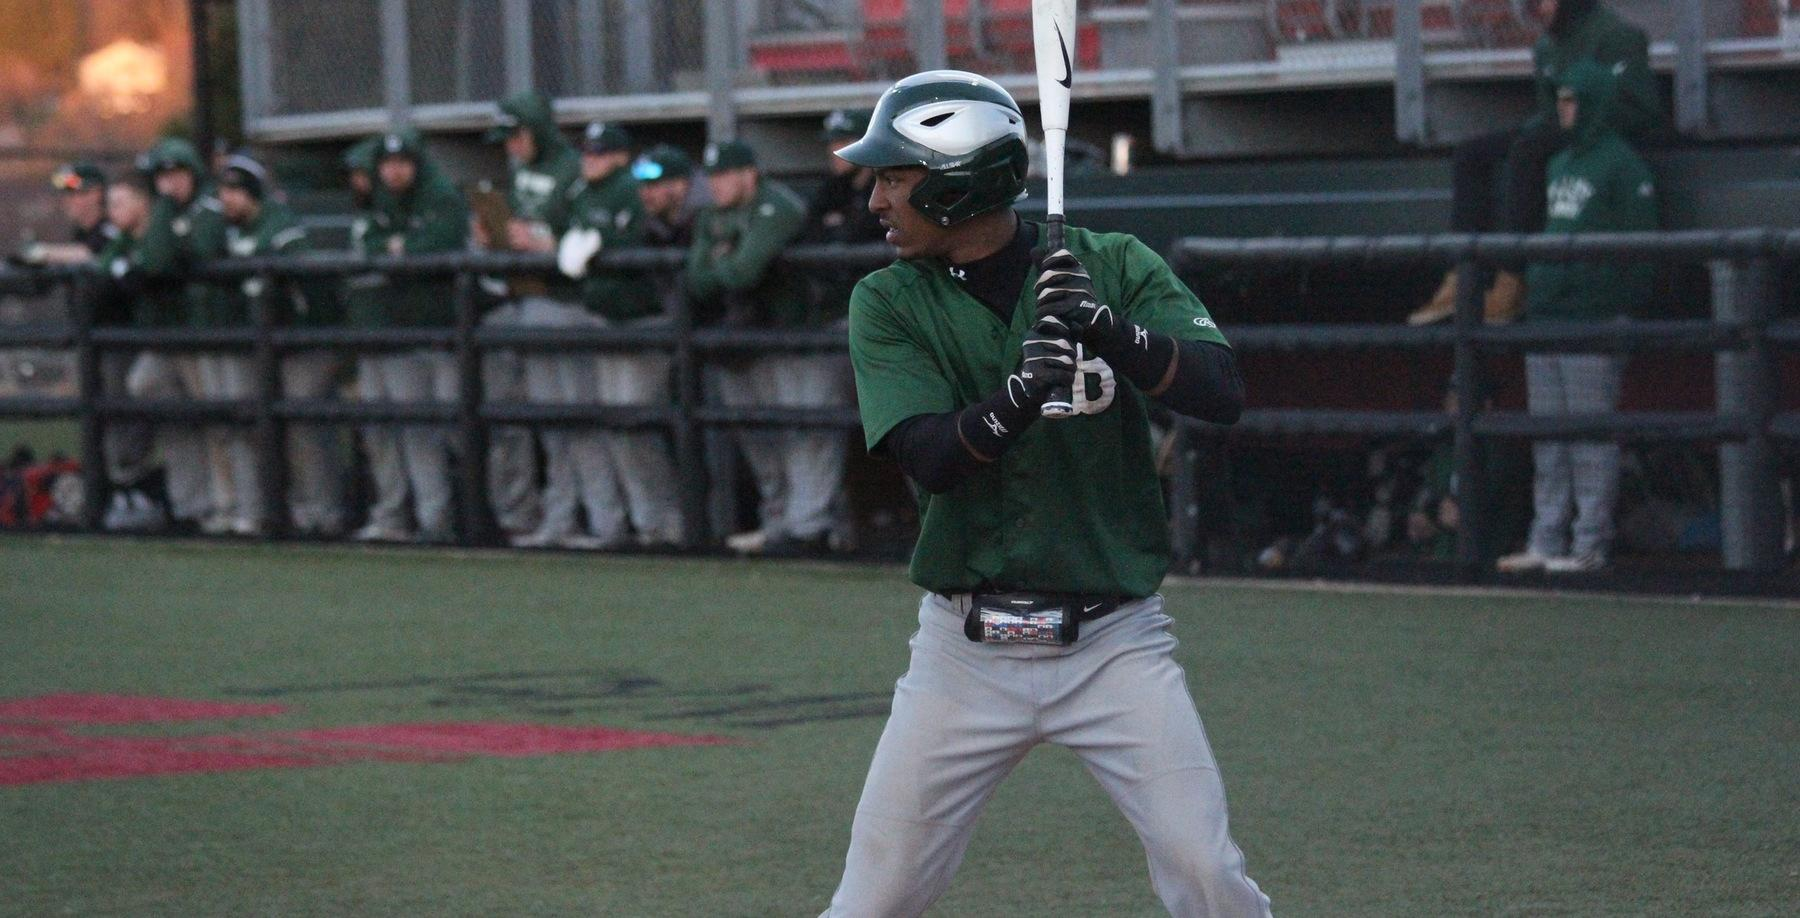 Bison score four in the ninth inning to knock off Westminster 7-5